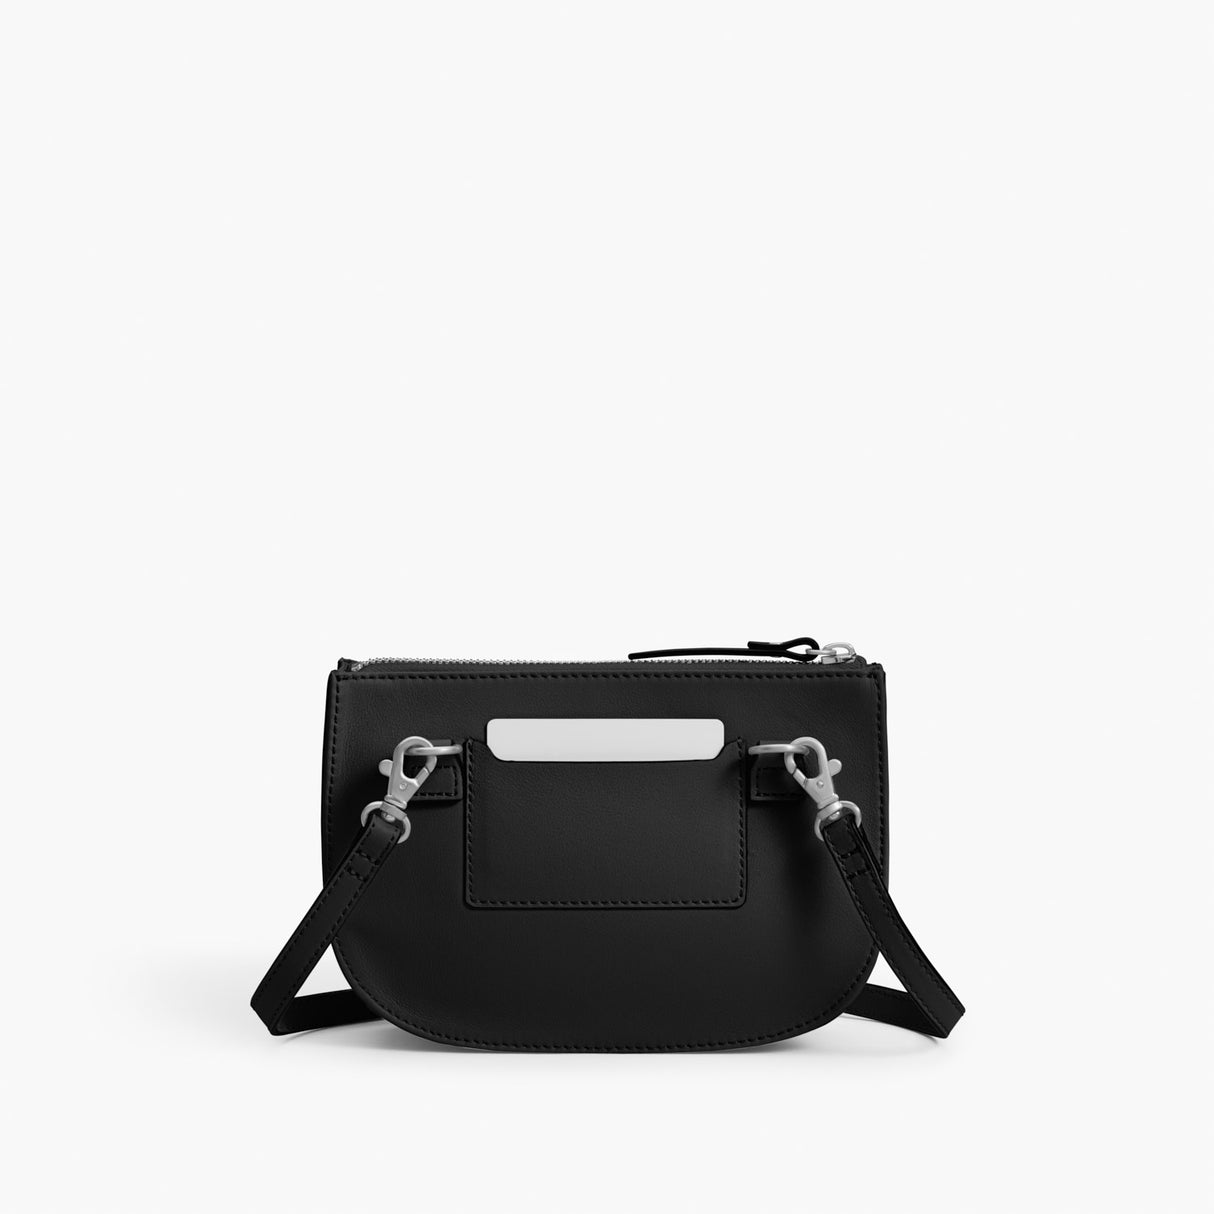 Back - Waverley 2 - Nappa Leather - Black / Silver / Grey - Crossbody Bag - Lo & Sons